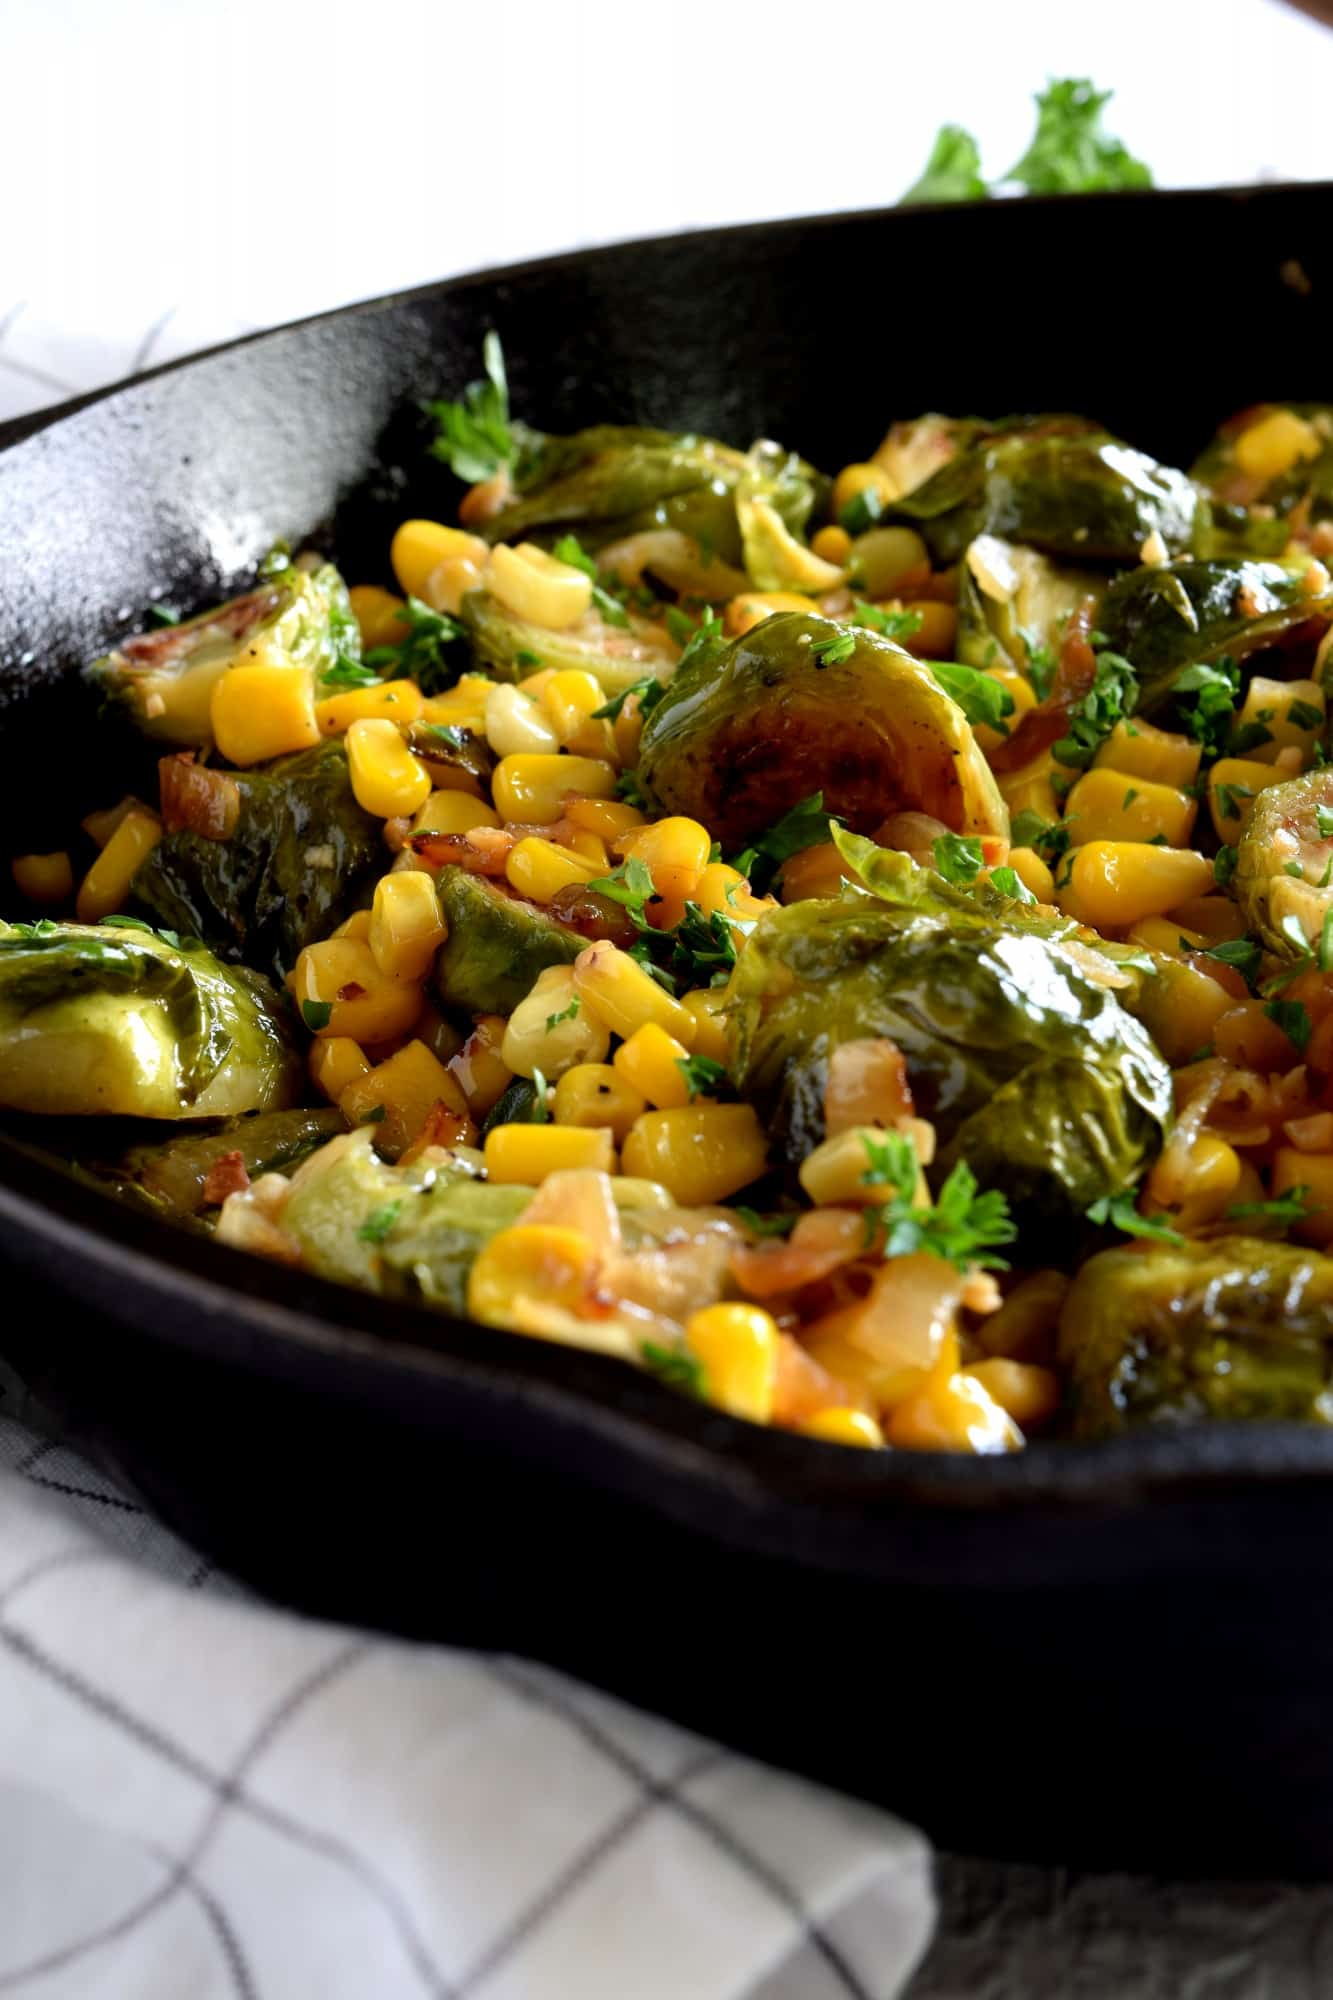 Spicy Pan Seared Brussel Sprouts With Corn Amp Caramelized